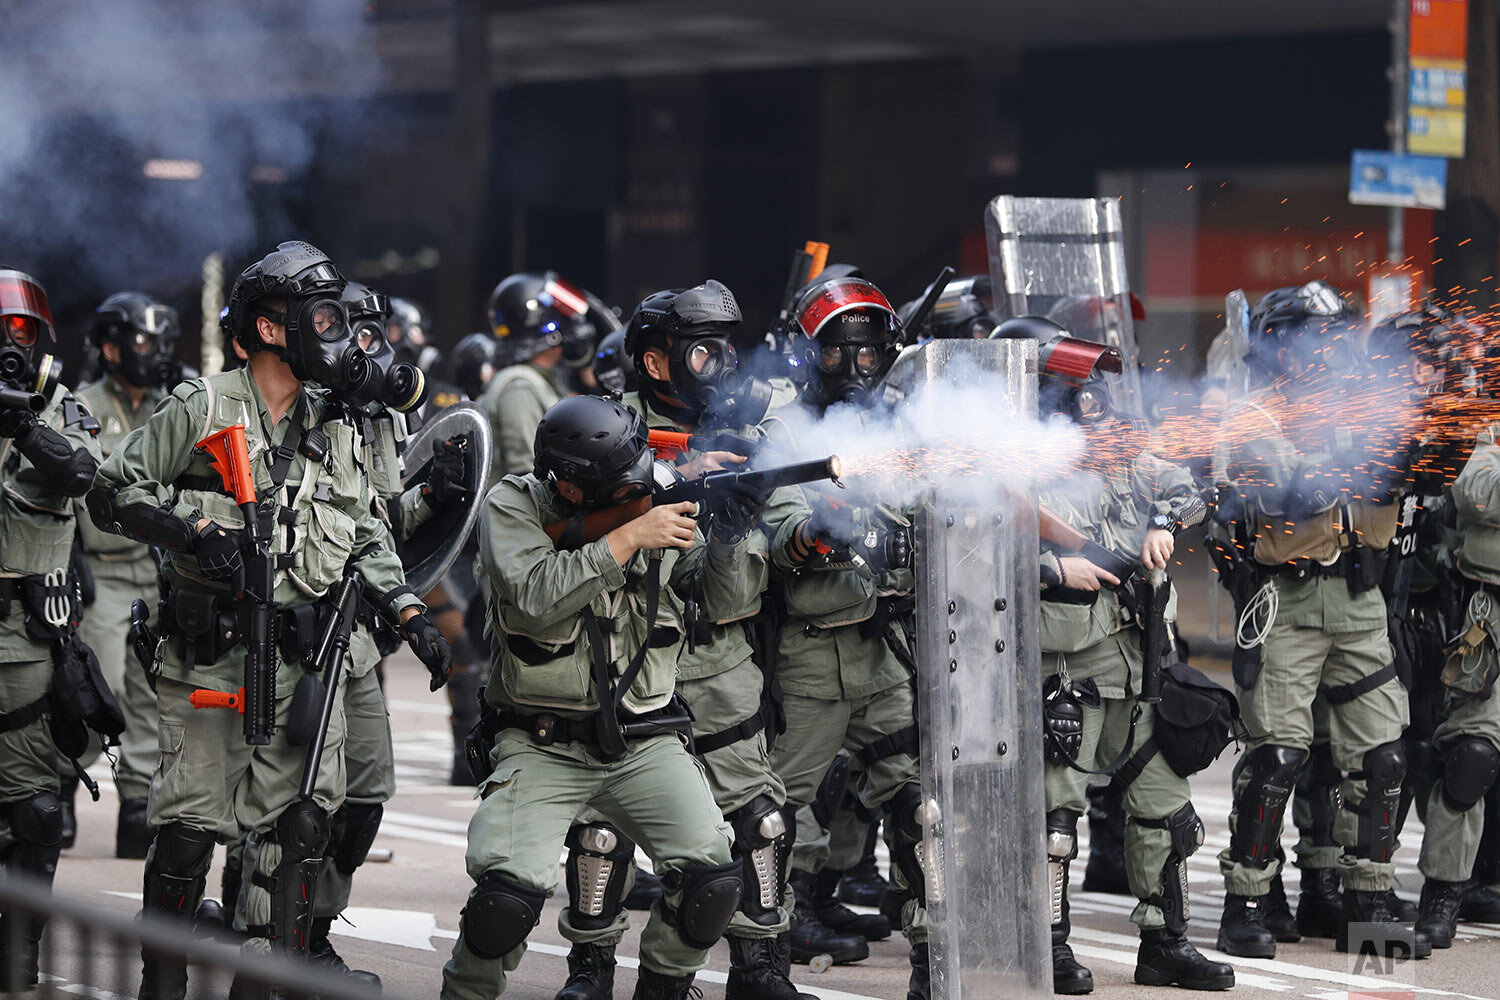 Police fire tear gas to disperse anti-government protesters in Hong Kong, Tuesday, Oct. 1, 2019.  (AP Photo/Vincent Thian)